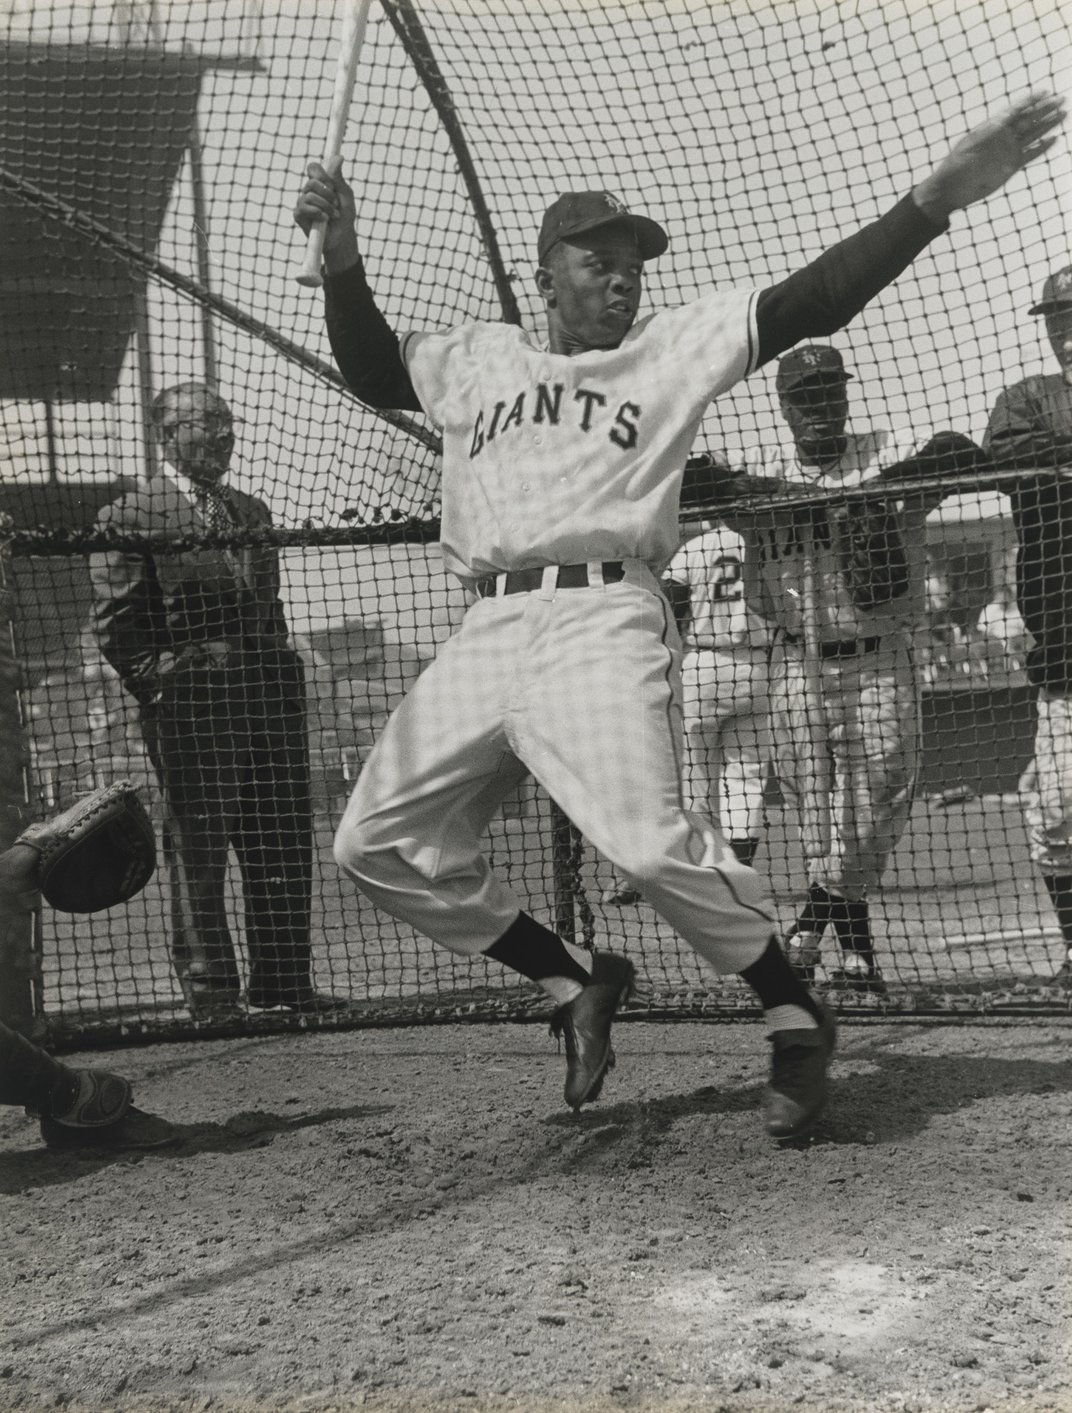 Even Today, Willie Mays Remains a Giant in Baseball History